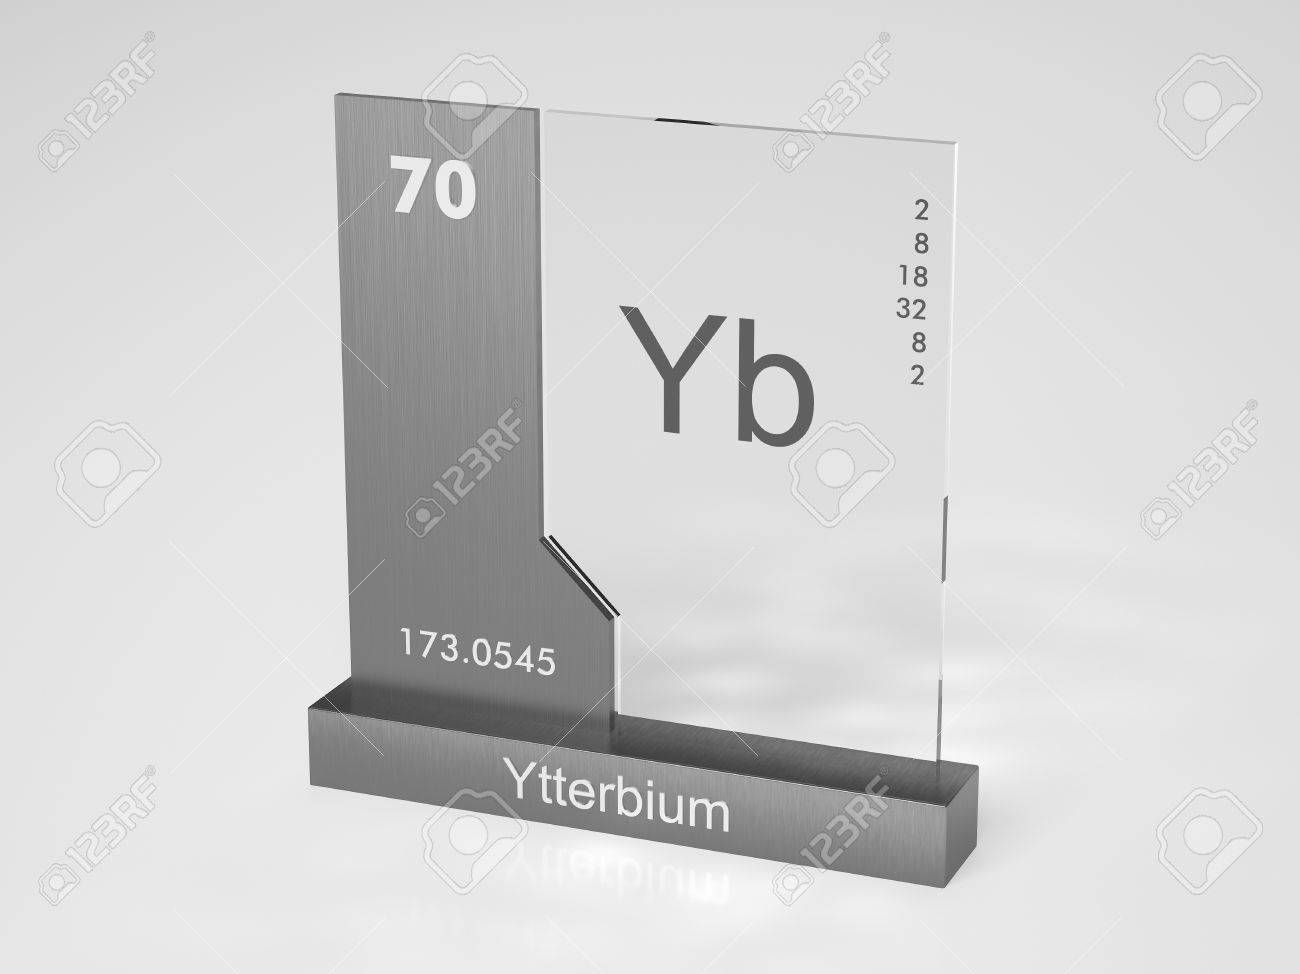 Periodic table of carbon gallery gantt chart access periodic table yb images periodic table images 10569413 ytterbium symbol yb chemical element of the periodic gamestrikefo Images